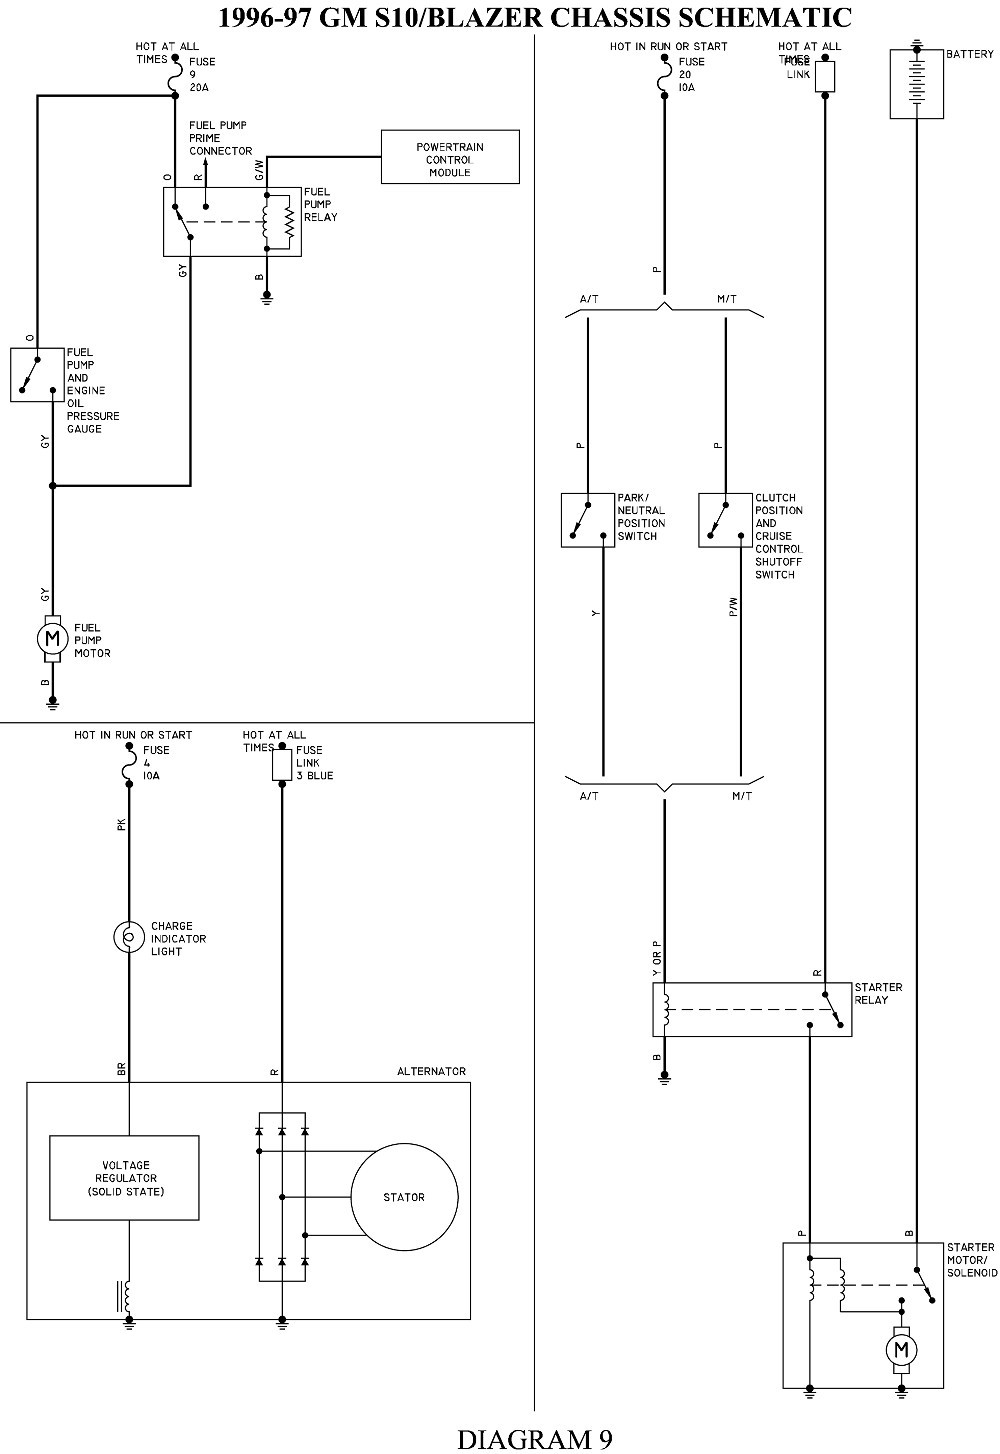 1996 Chevy S10 Fuel Pump Wiring Diagram - Trusted Wiring Diagram •